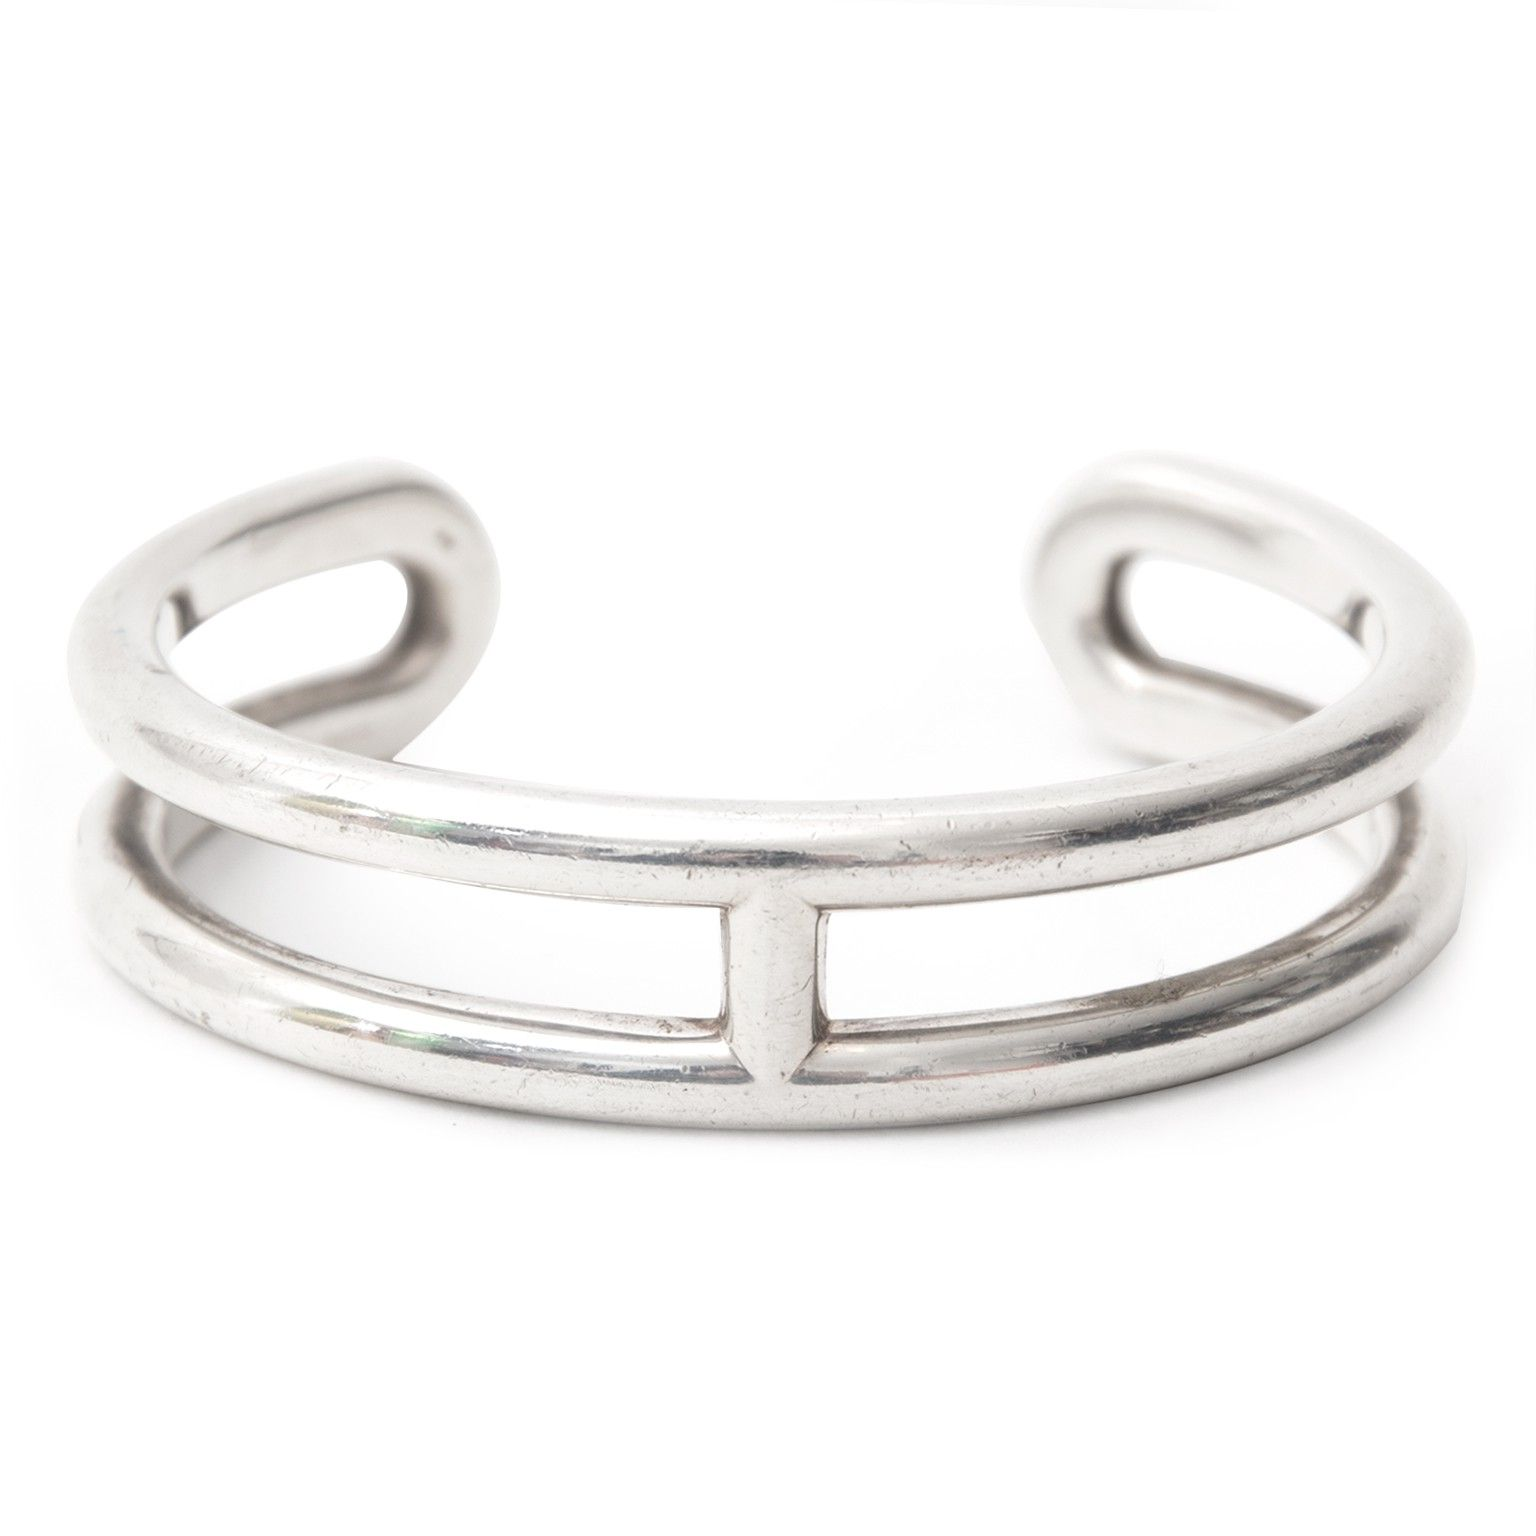 Authentic Hermes Silver Osmose Cuff Bracelets Jewelry Ping Places